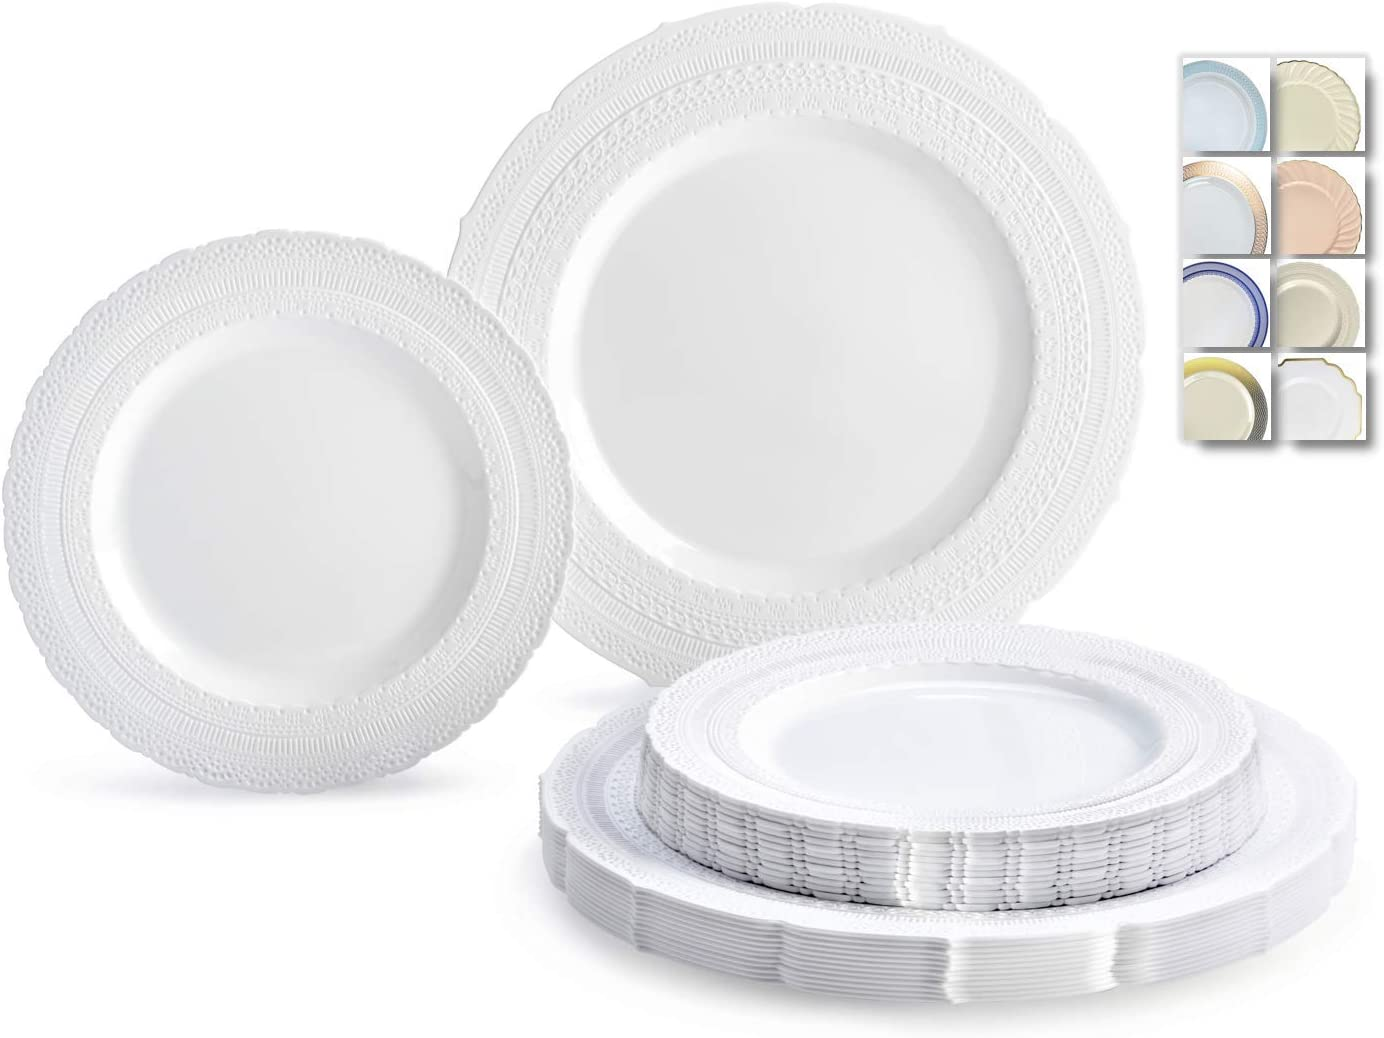 OCCASIONS 120 Plates Pack,(60 Guests) Extra Heavyweight Vintage Wedding Disposable/Reusable Plastic Plates 60 x 11'' Dinner + 60 x 8.25'' Salad/Dessert Plate (Chateau White) 61xUW6HyA8L